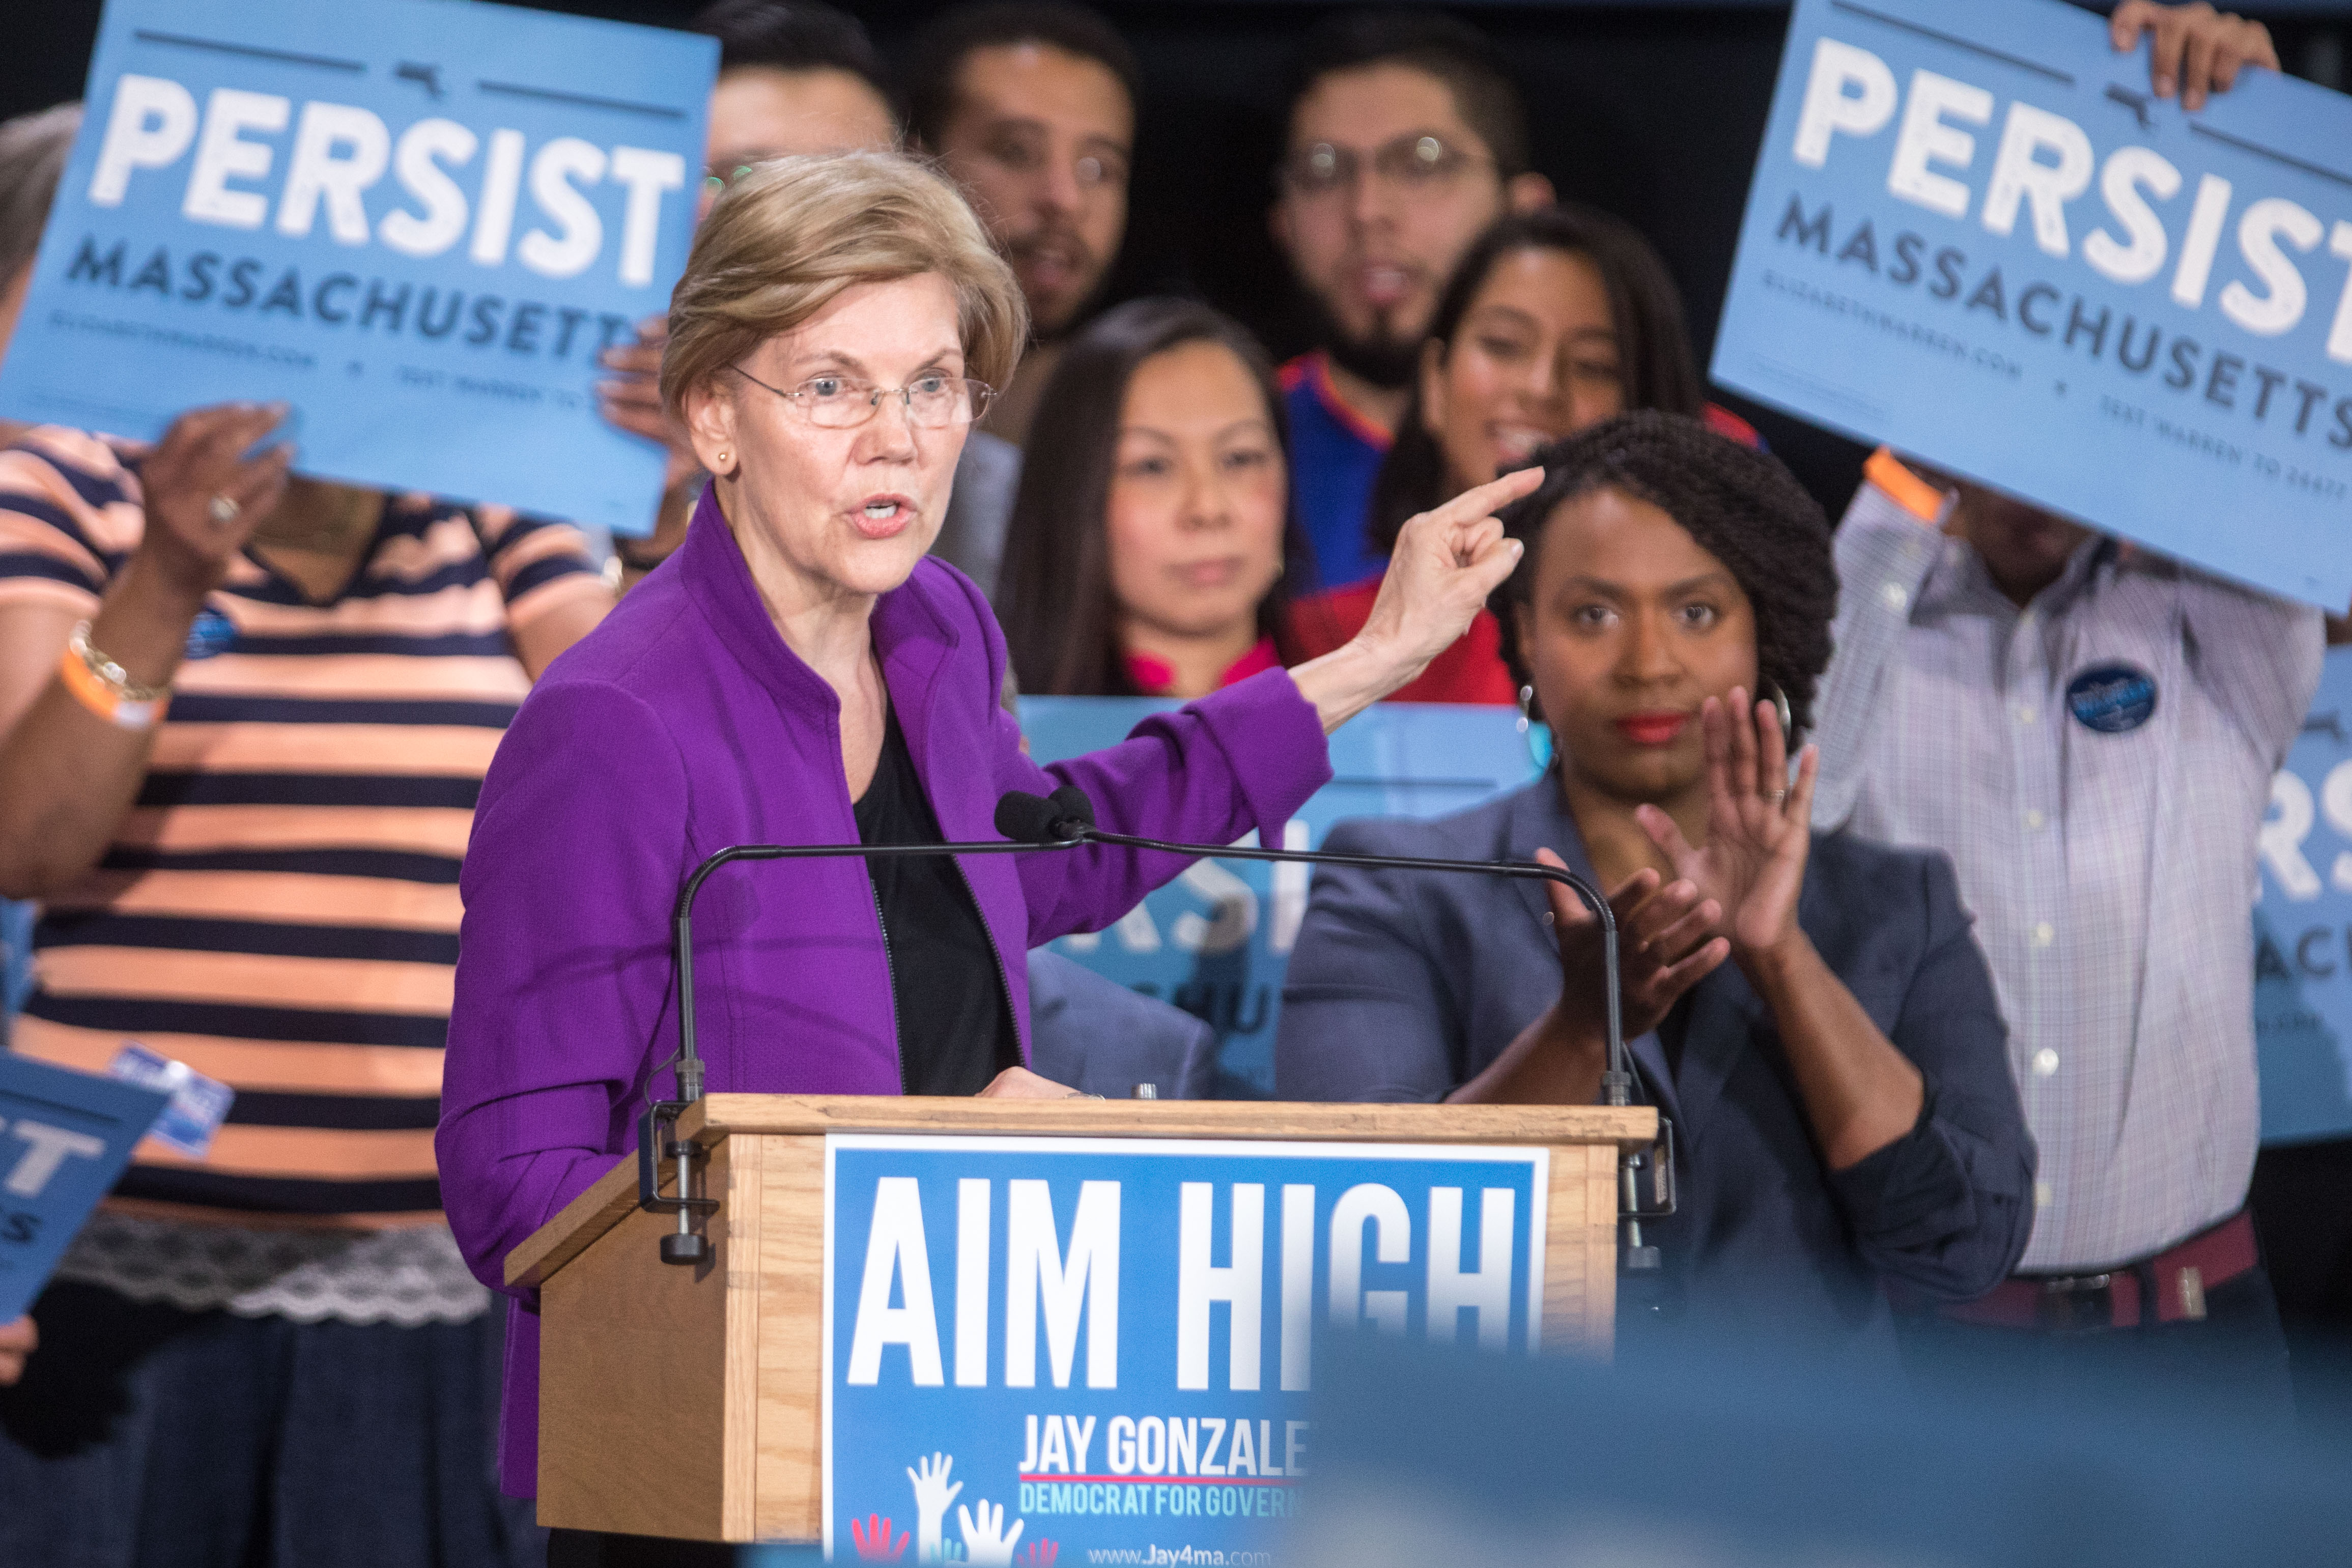 Warren On 'Arrogant Woman' Jab: 'McConnell Can't Shut Me Up,' Neither Can Kelly